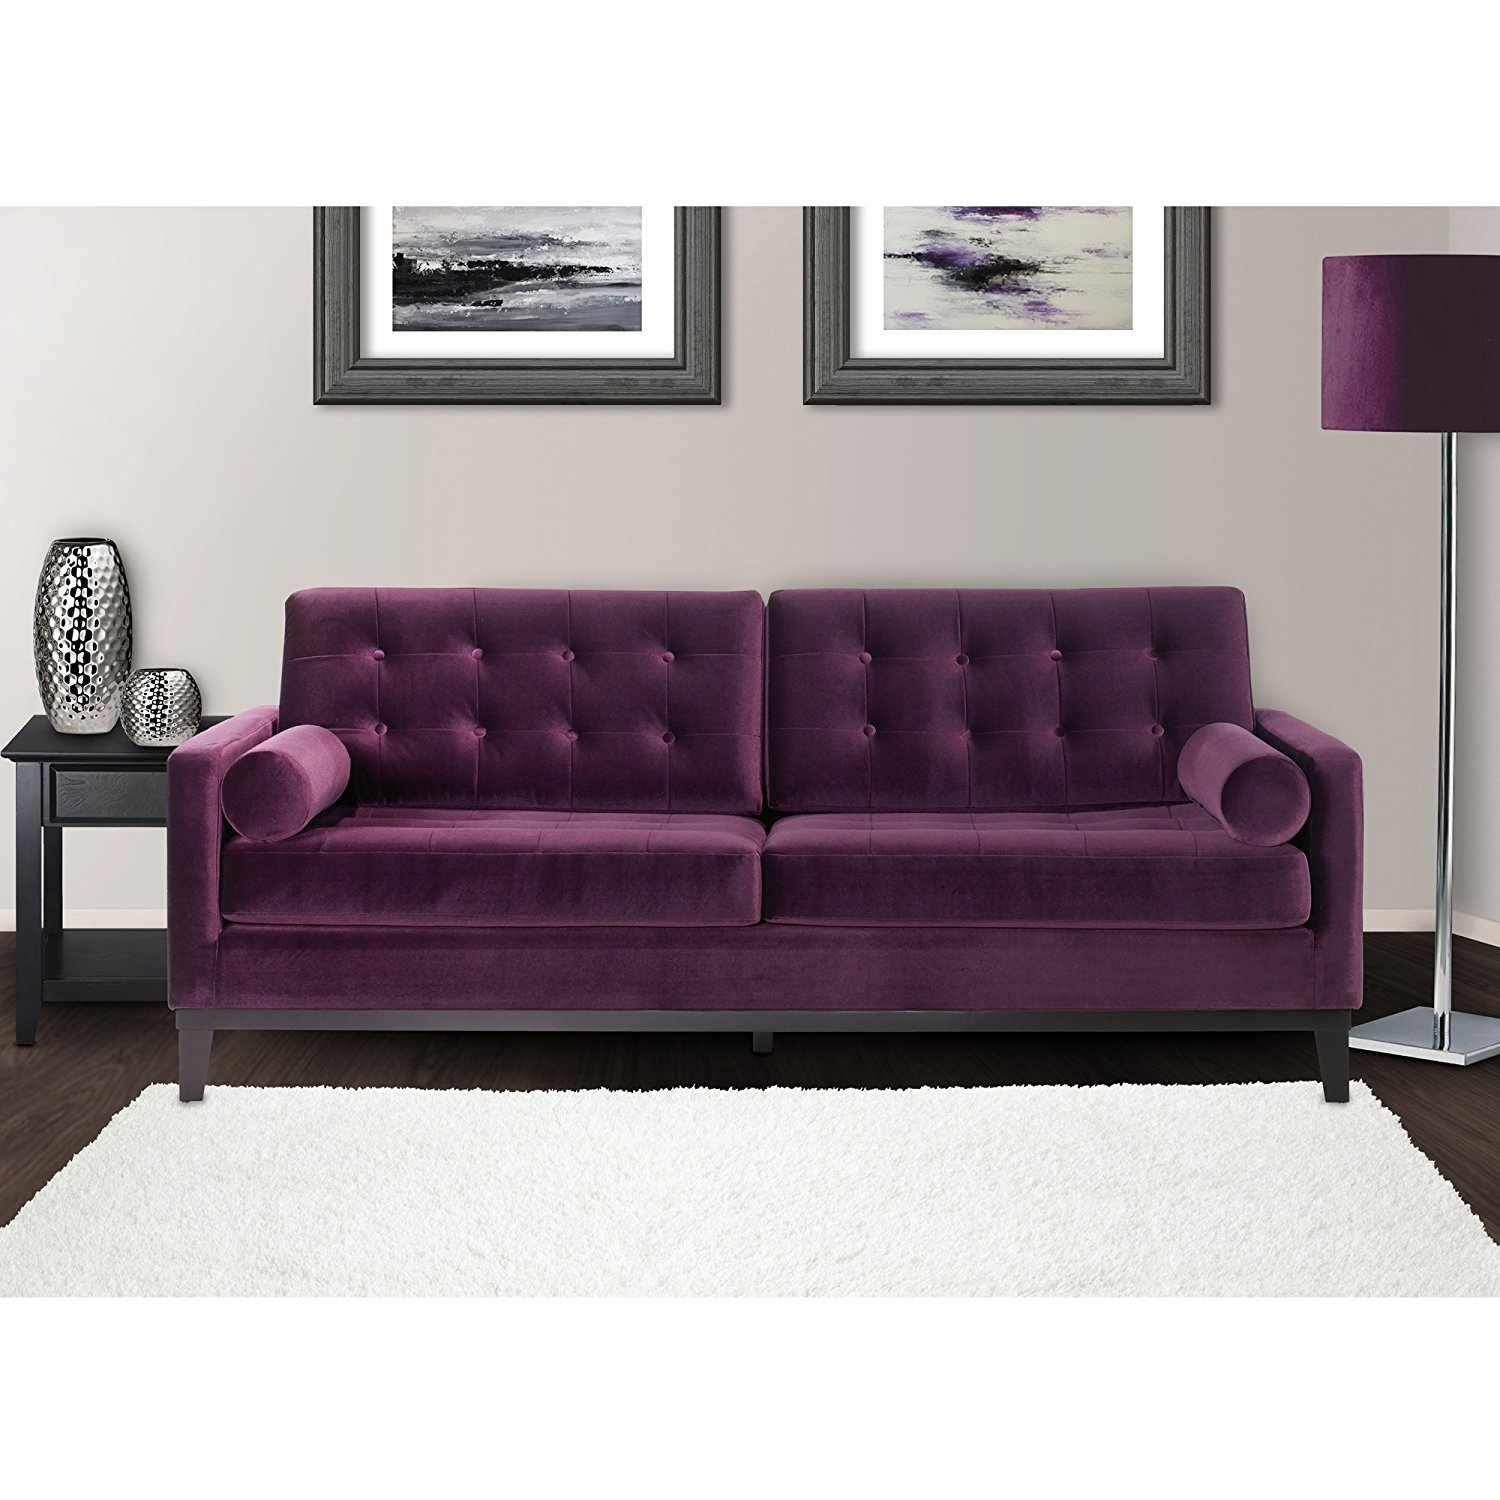 18 Jawdroppingly Cheap Sofa Sets You Must Buy For Living